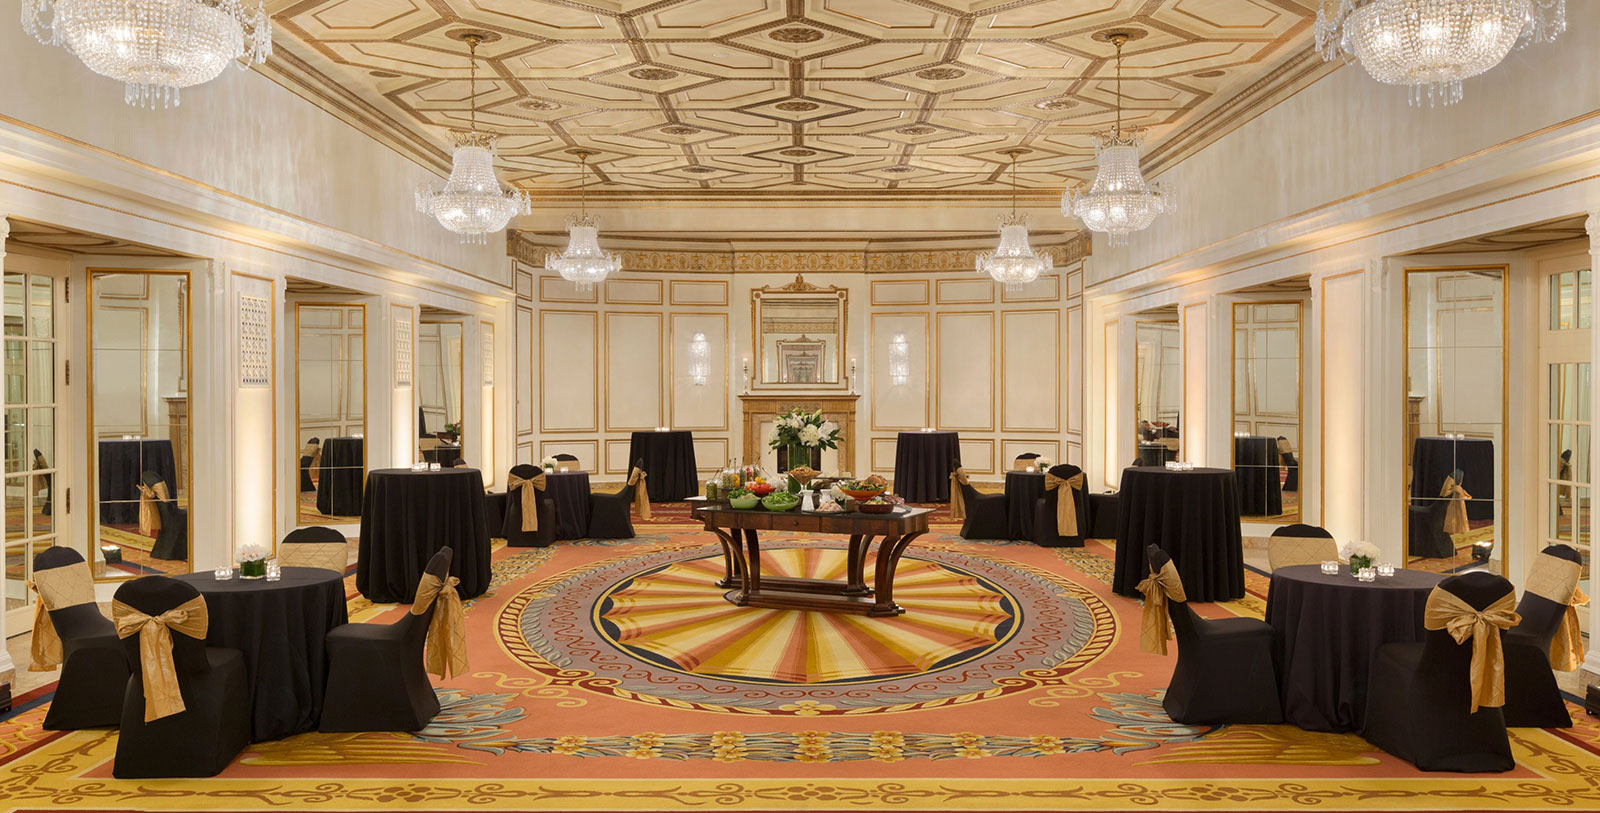 Image of Vancouver Island Room, Fairmont Hotel Vancouver, 1939, Member of Historic Hotels Worldwide, in Vancouver, Canada, Special Occasions